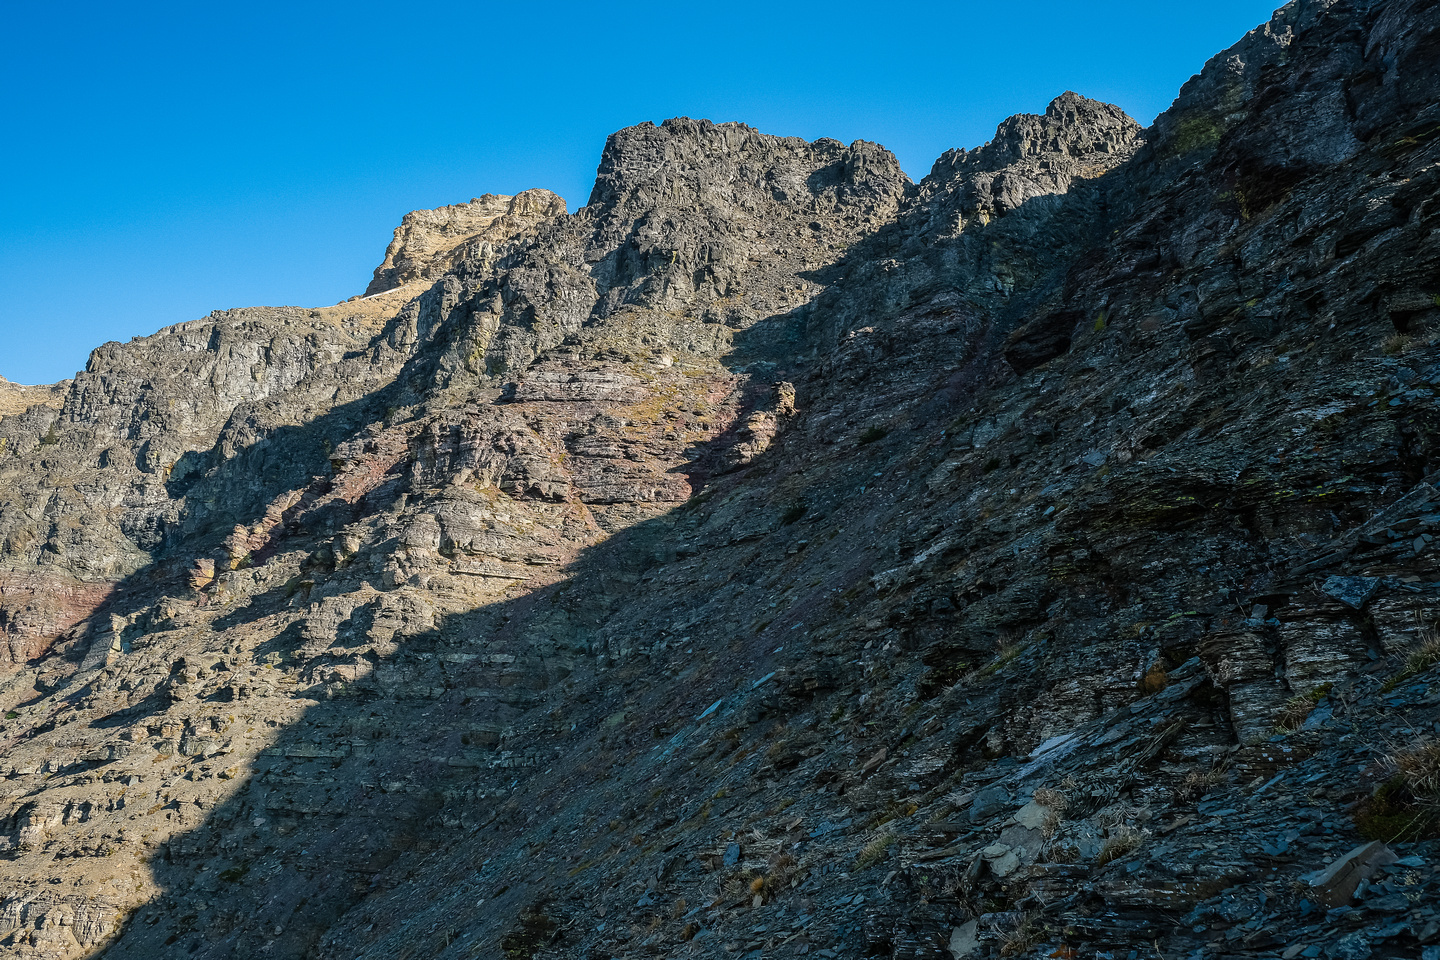 The gully at center rising to right is used to bypass difficulties on the ridge.